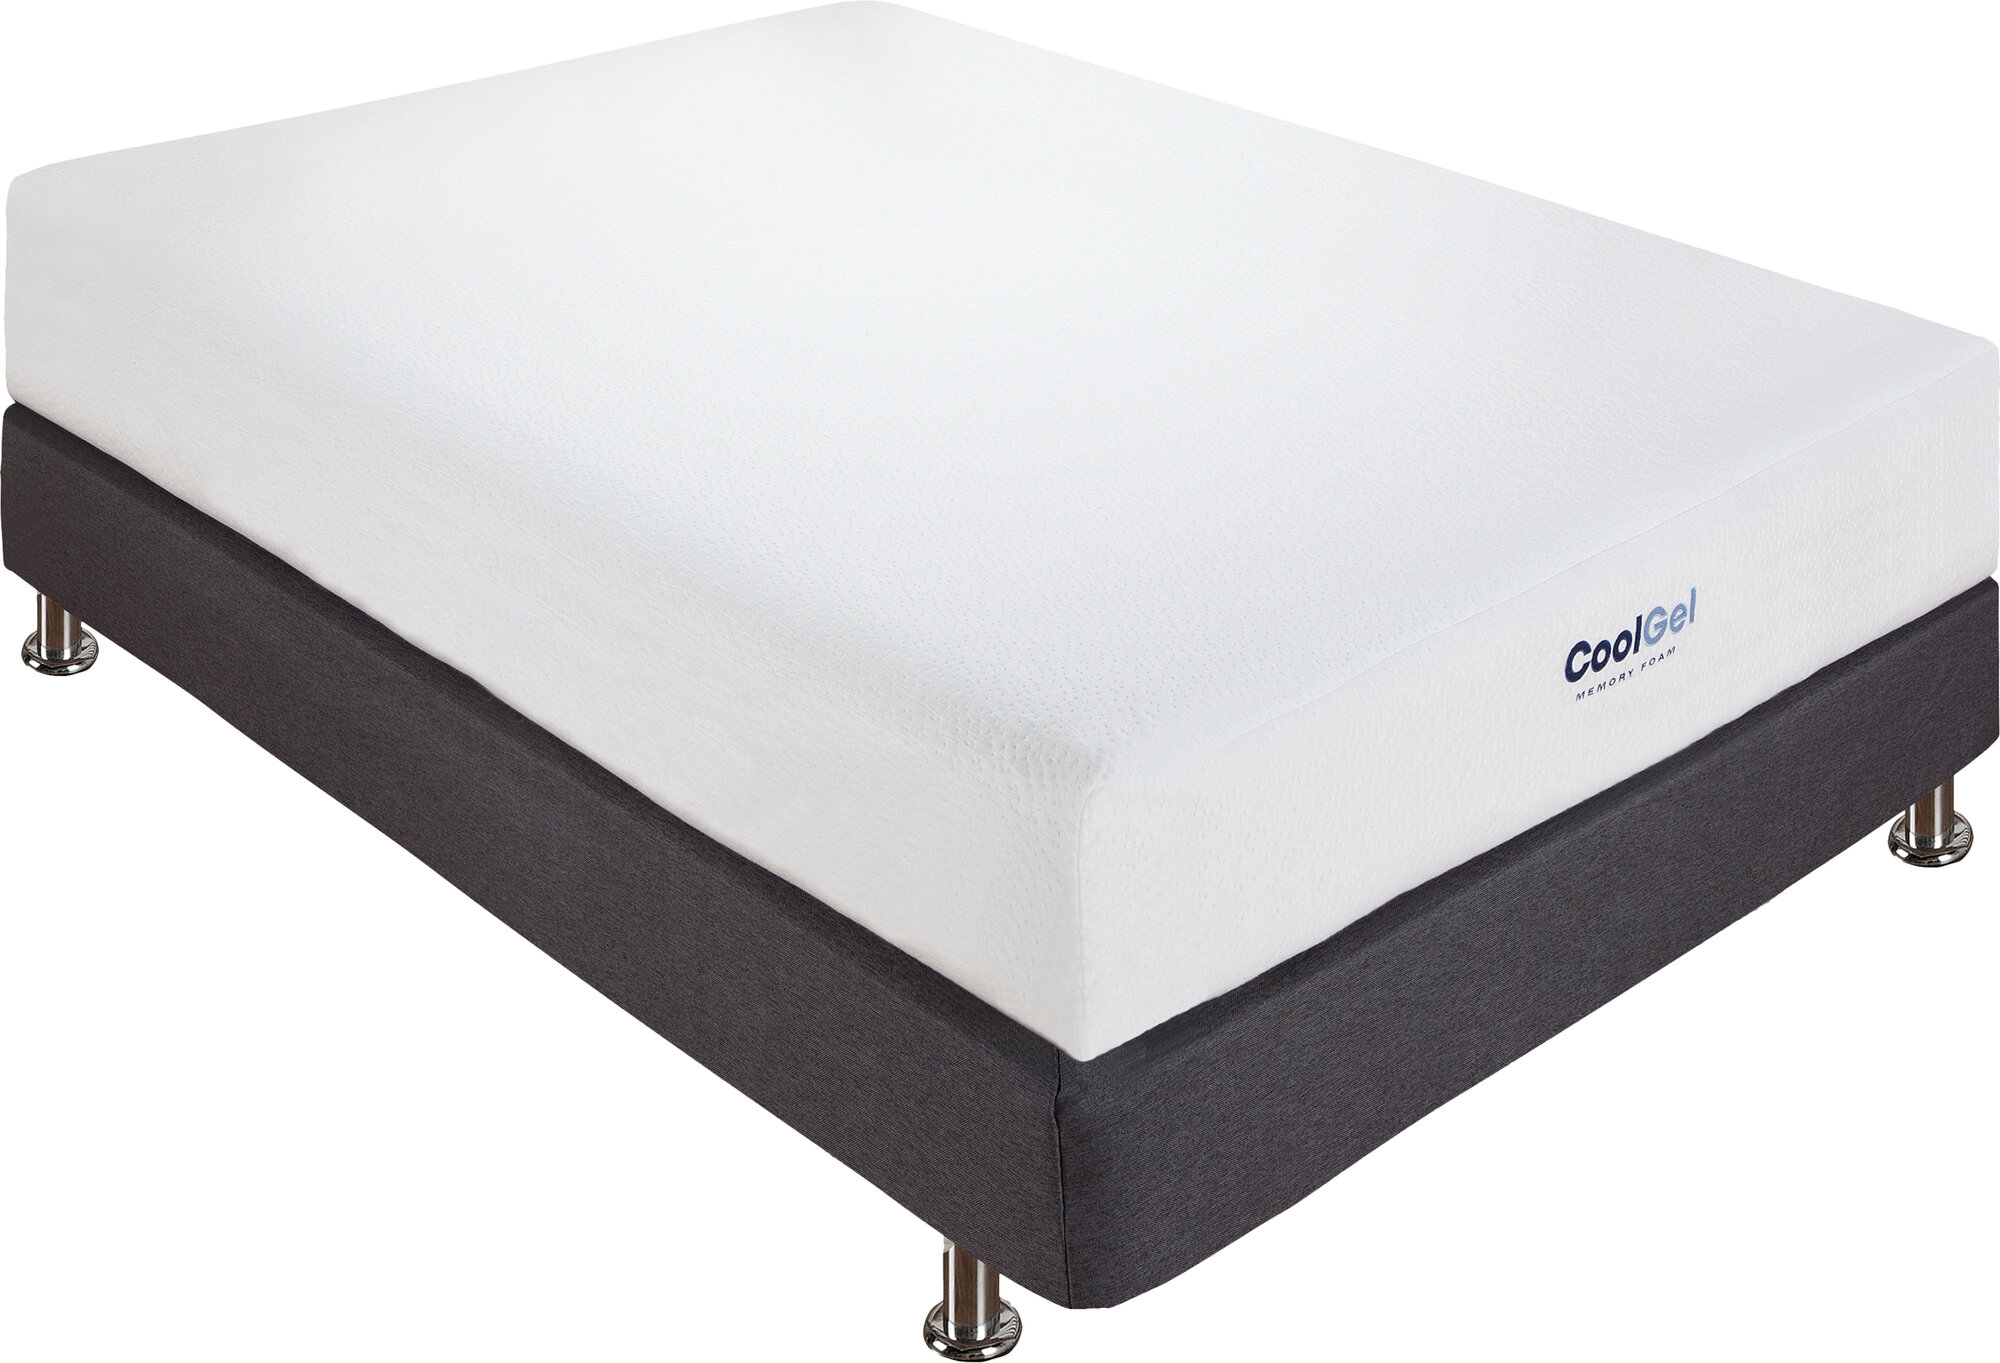 Classic Brands 8 Firm Gel Memory Foam Mattress Ebay